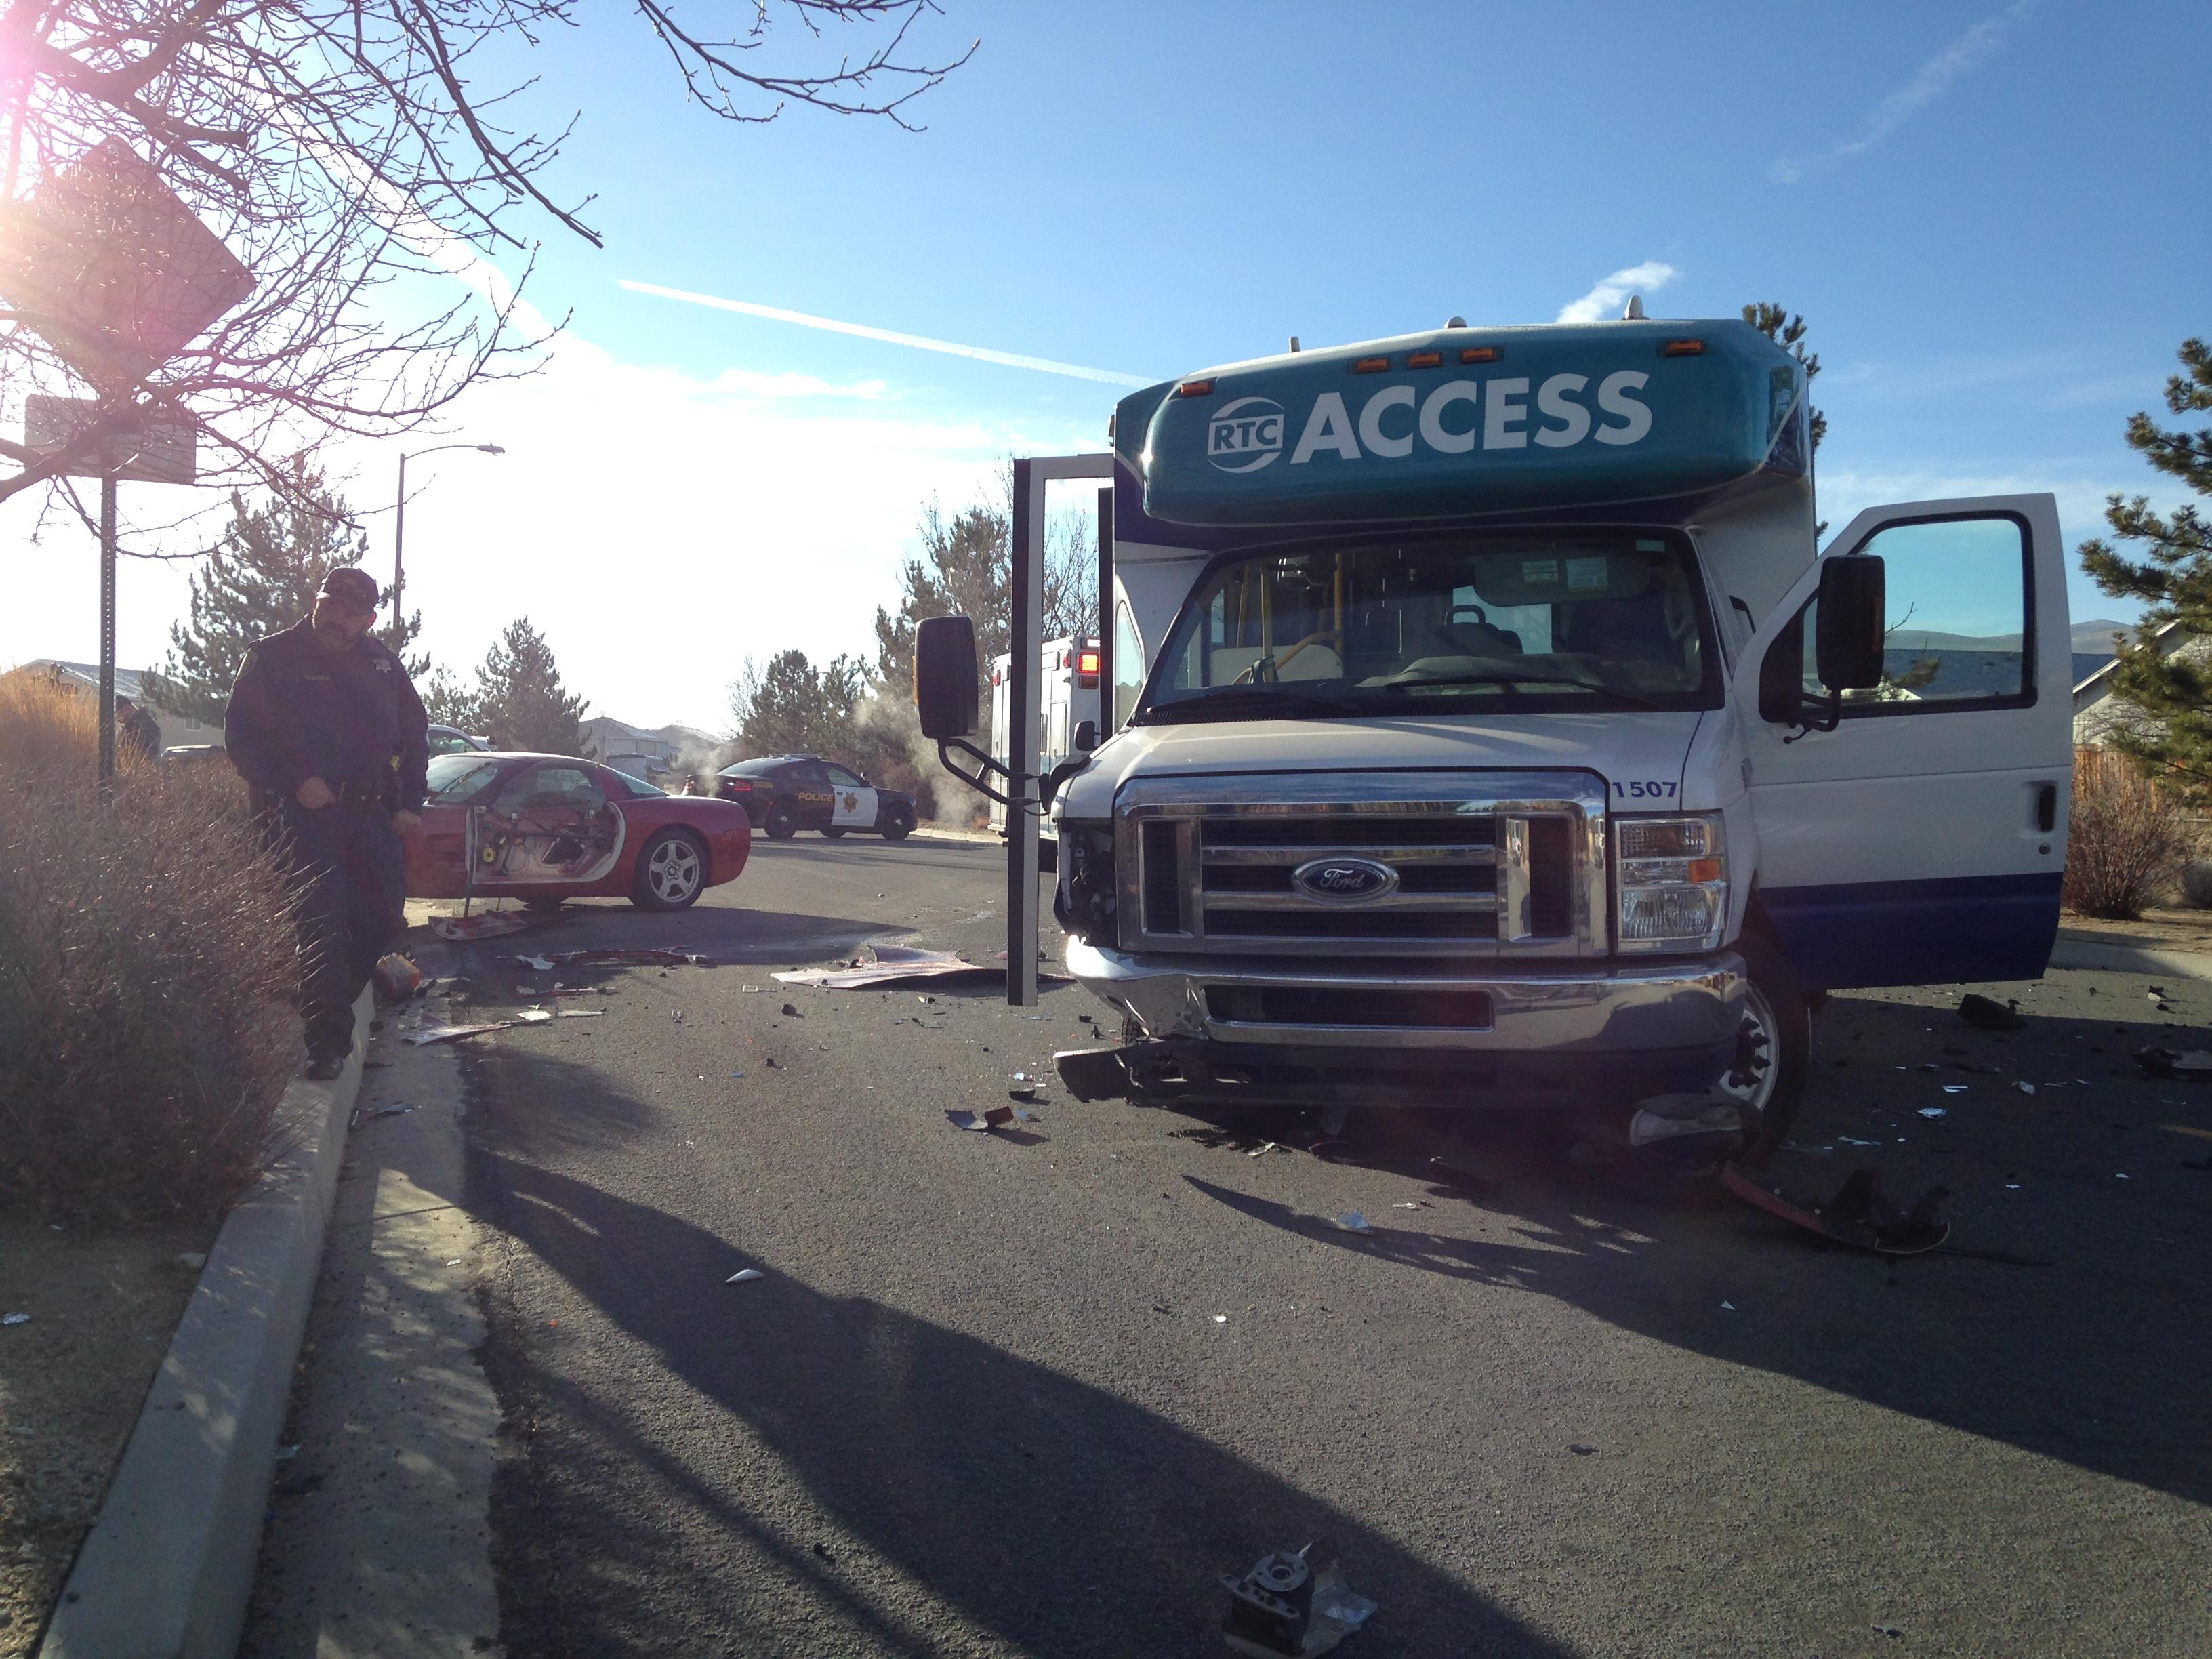 2 transported with minor injuries after car collides with elderly transport bus in Stead